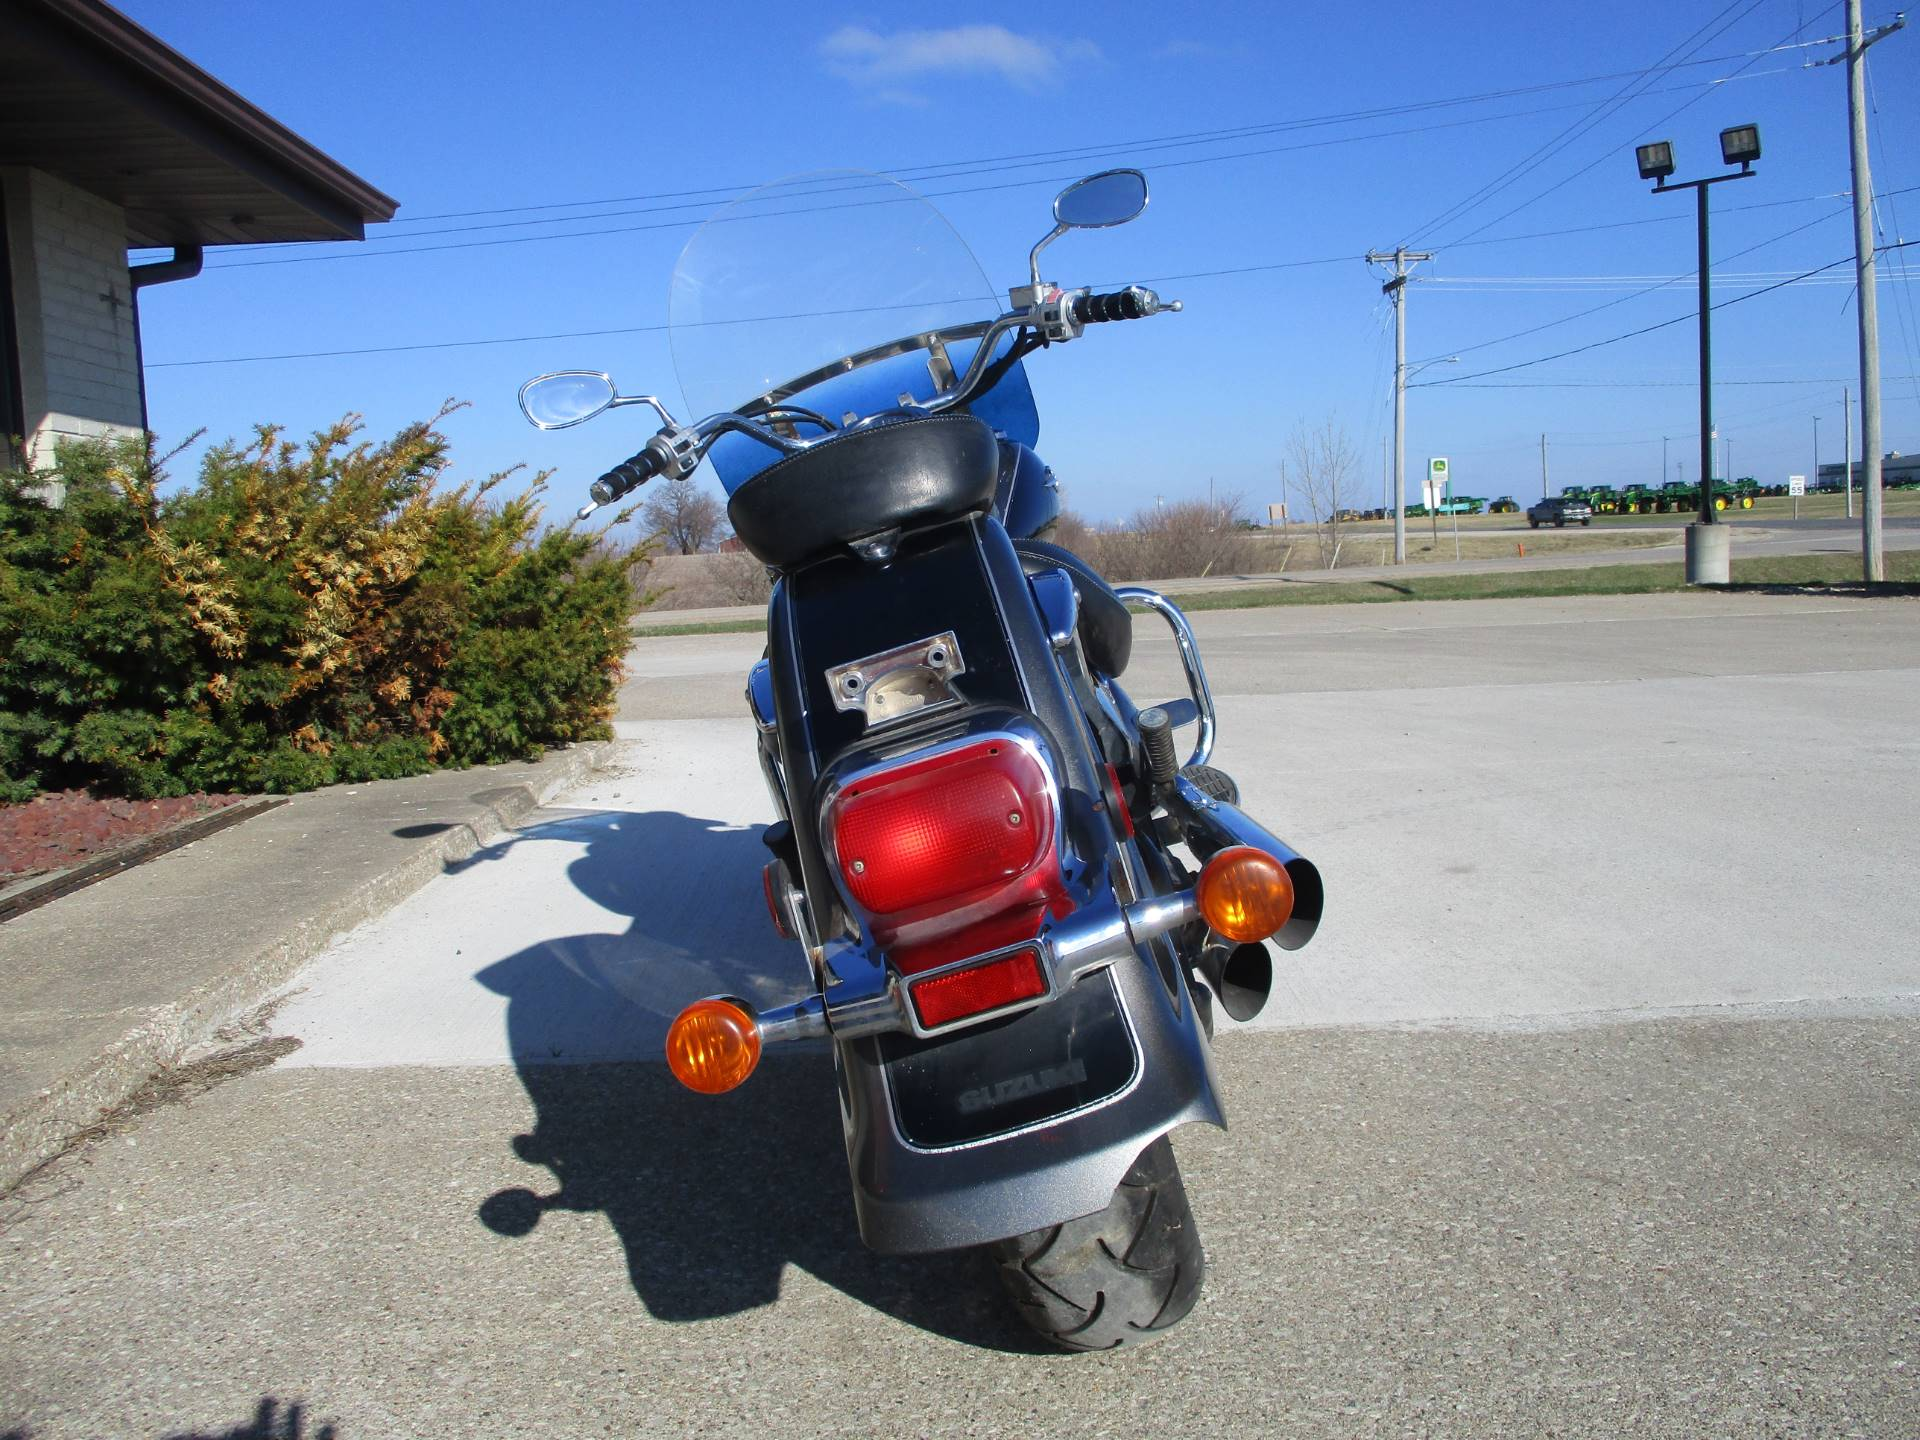 2005 Suzuki Boulevard C50 in Winterset, Iowa - Photo 8